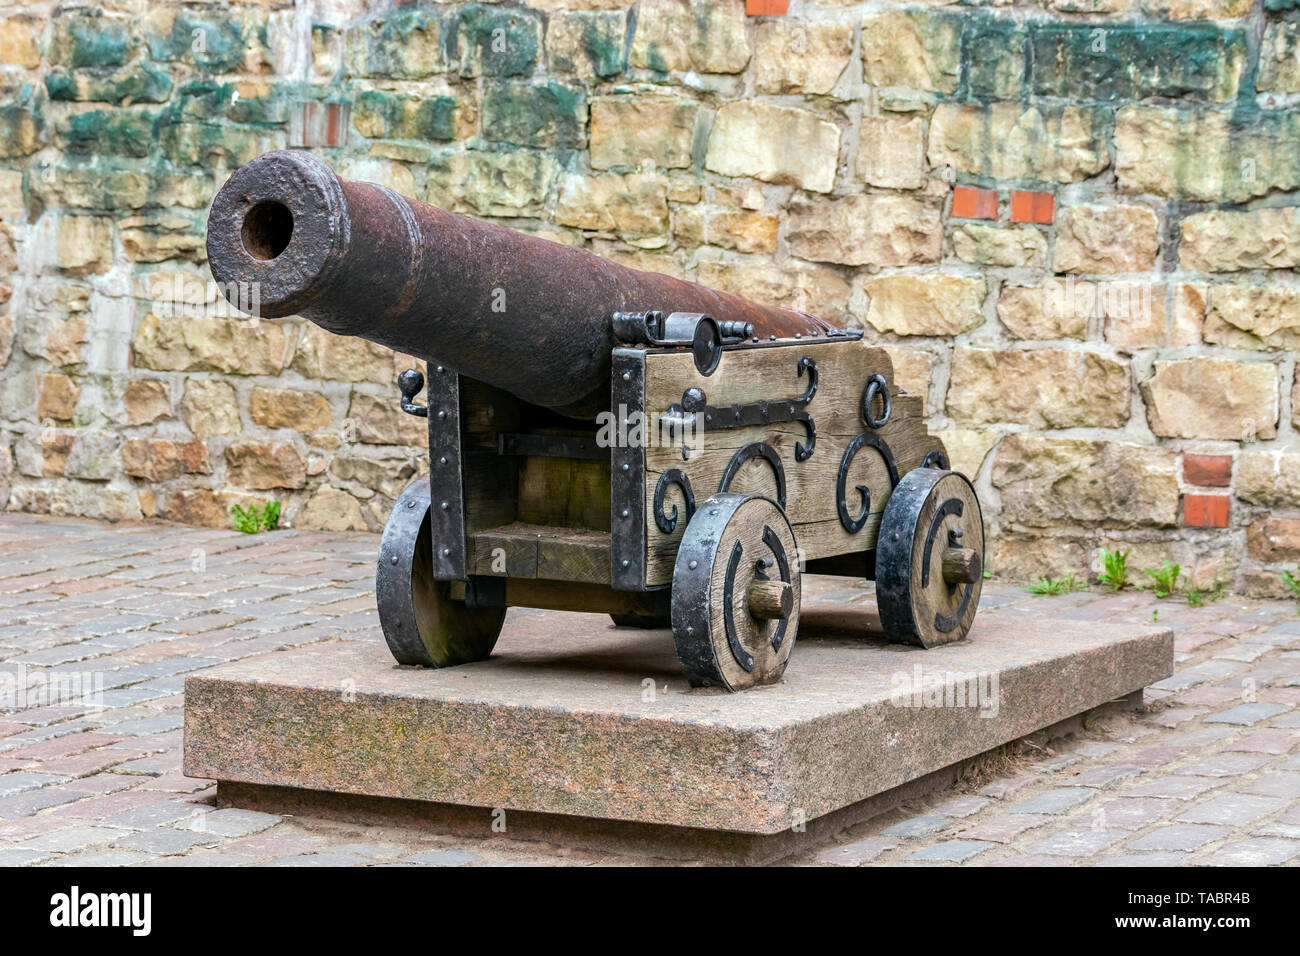 Old cast-iron cannon on a wooden carriage with wooden wheels, standing on a stone plate against the background of the fortress wall. - Stock Image